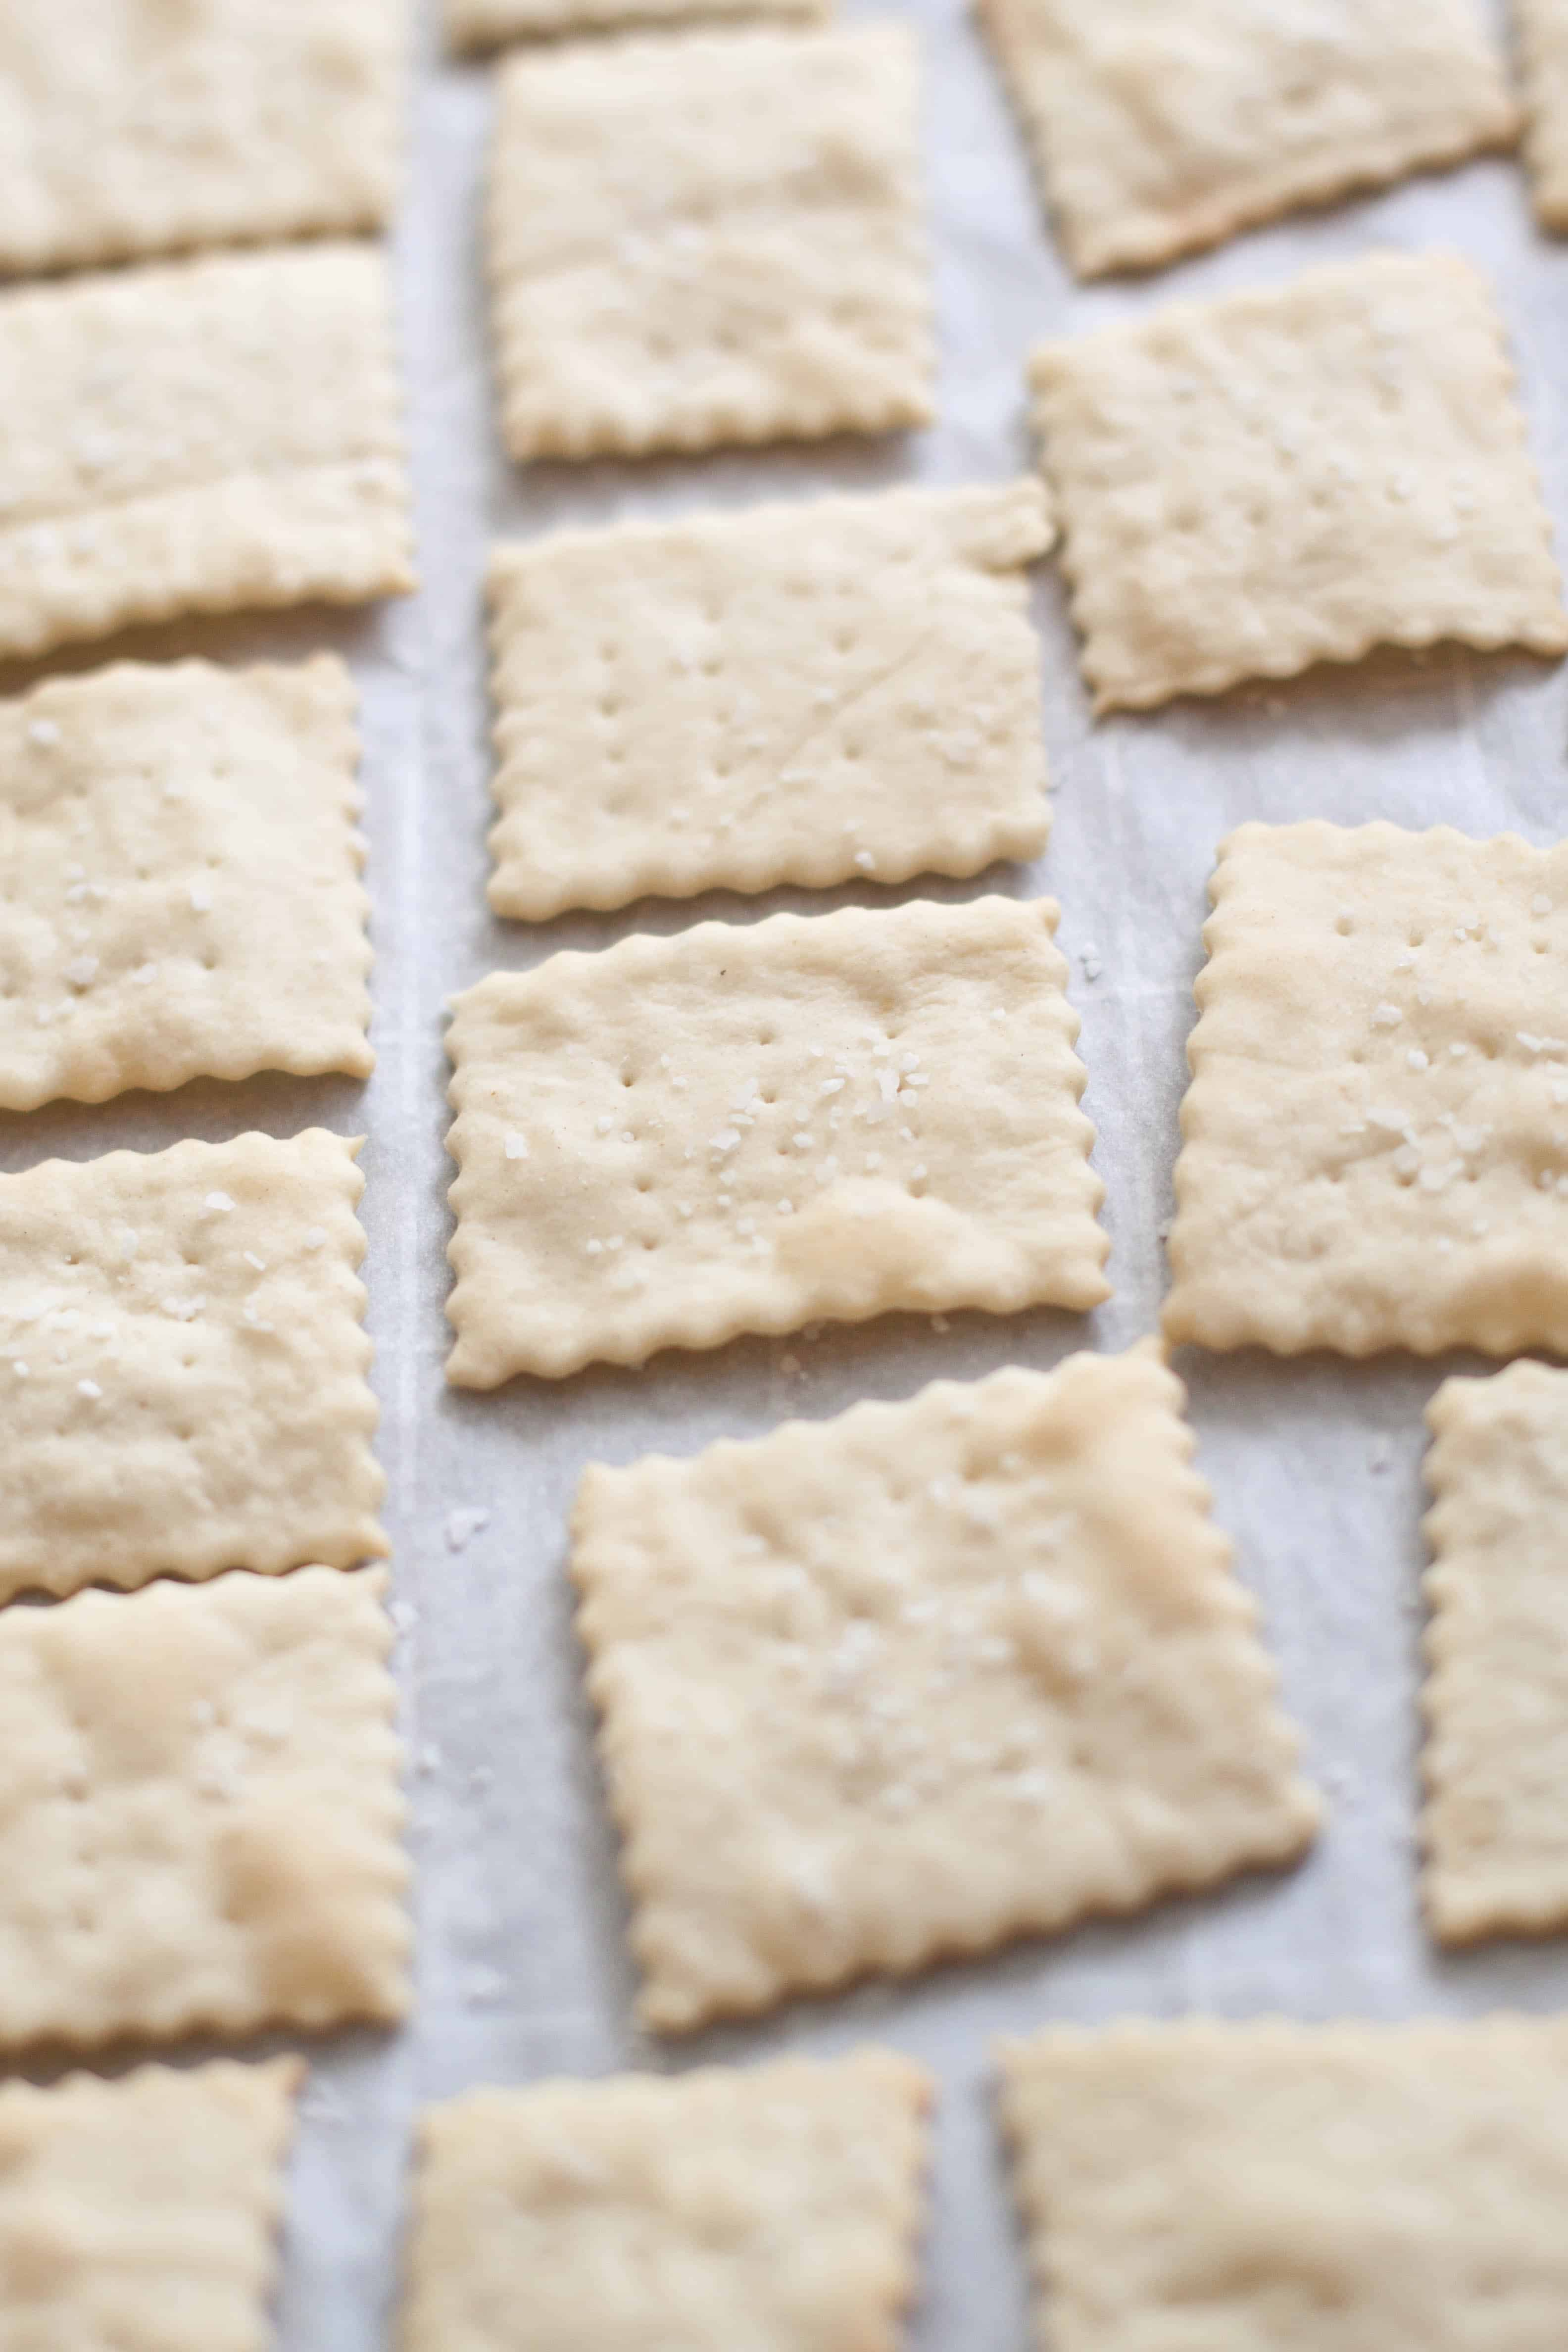 baked saltine crackers lined up on parchment paper